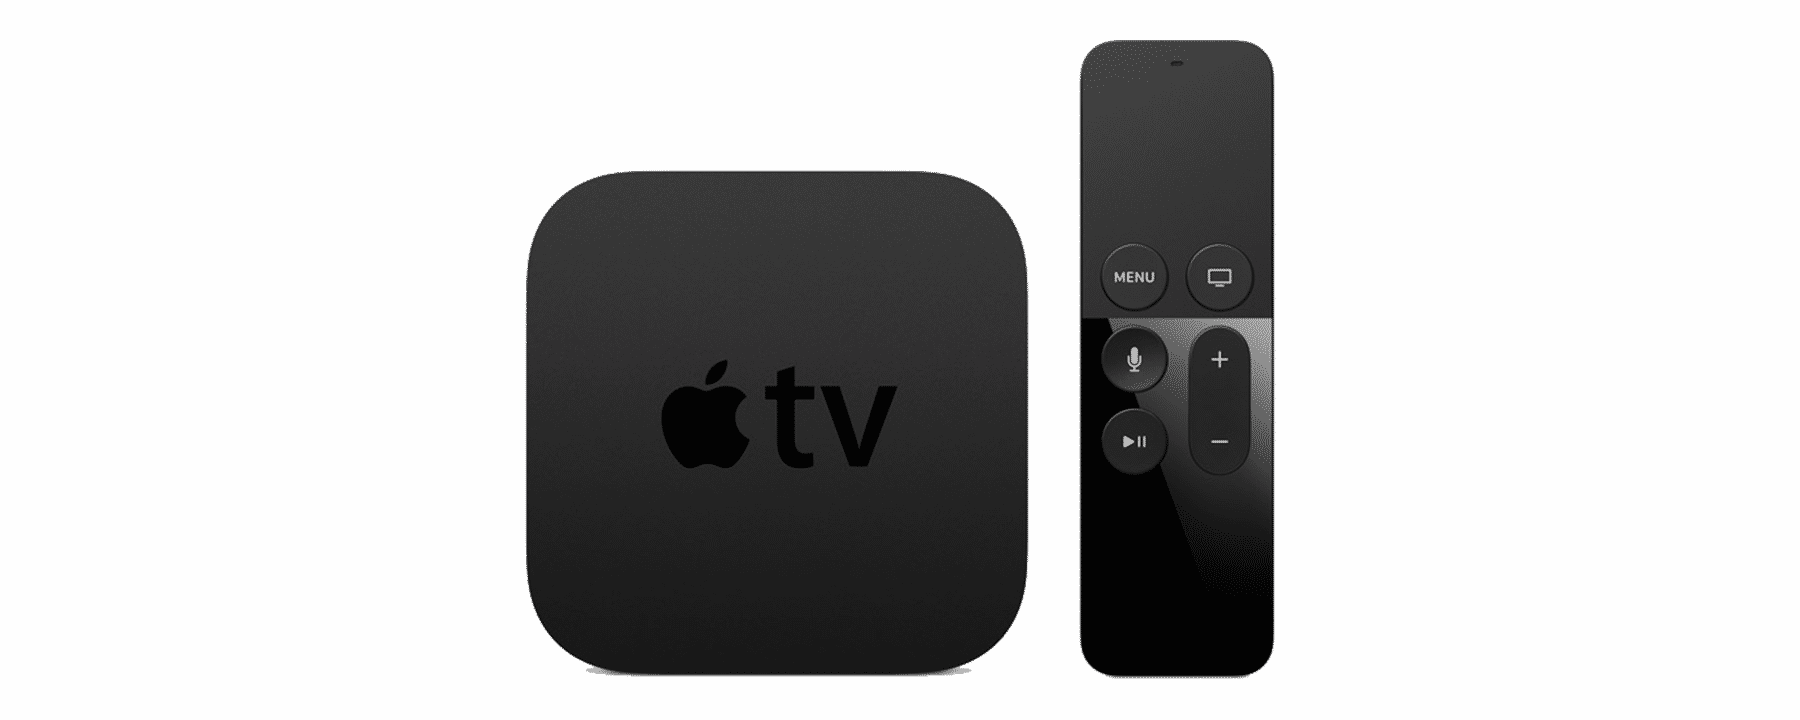 Apple TV 4 as a wireless screen mirroring device